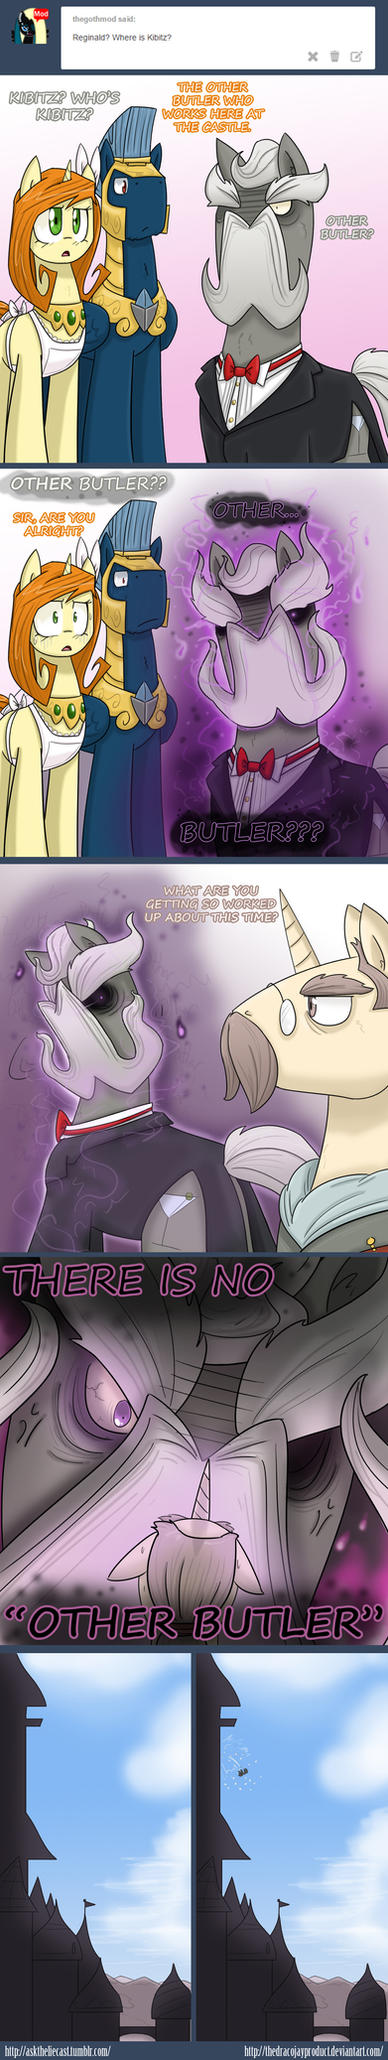 AsktheLIECast 'Other Butler' by TheDracoJayProduct